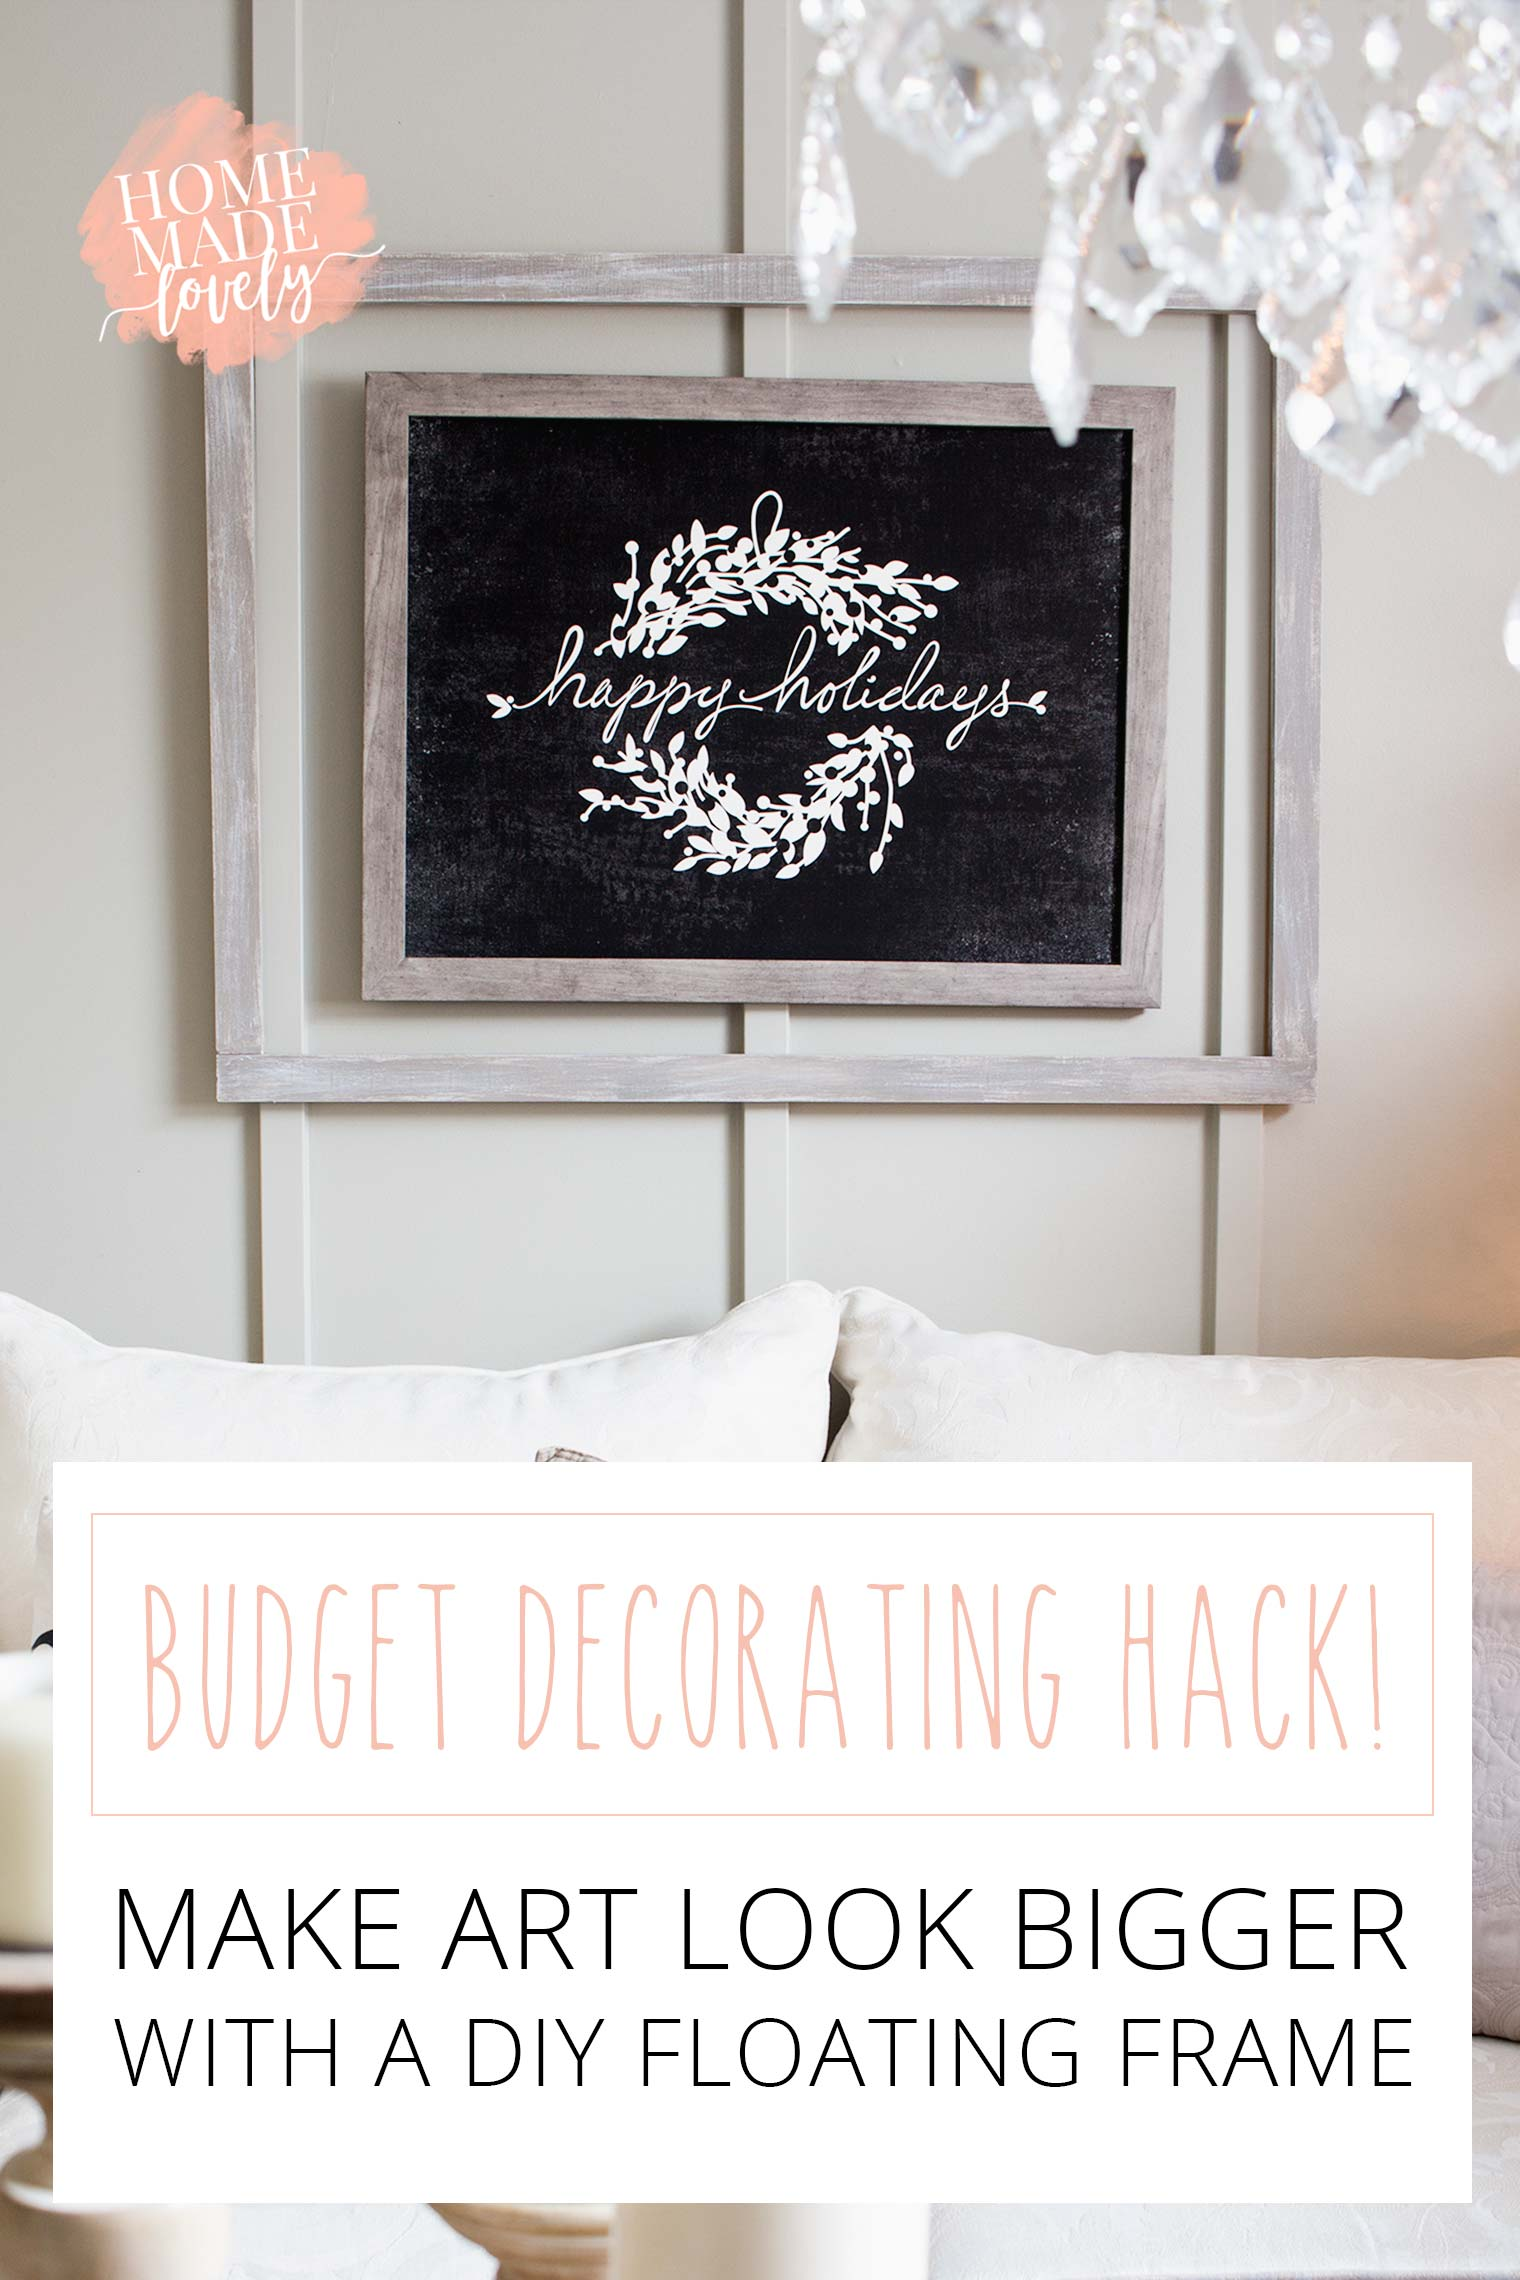 make-art-look-bigger-with-a-diy-floating-frame-pin